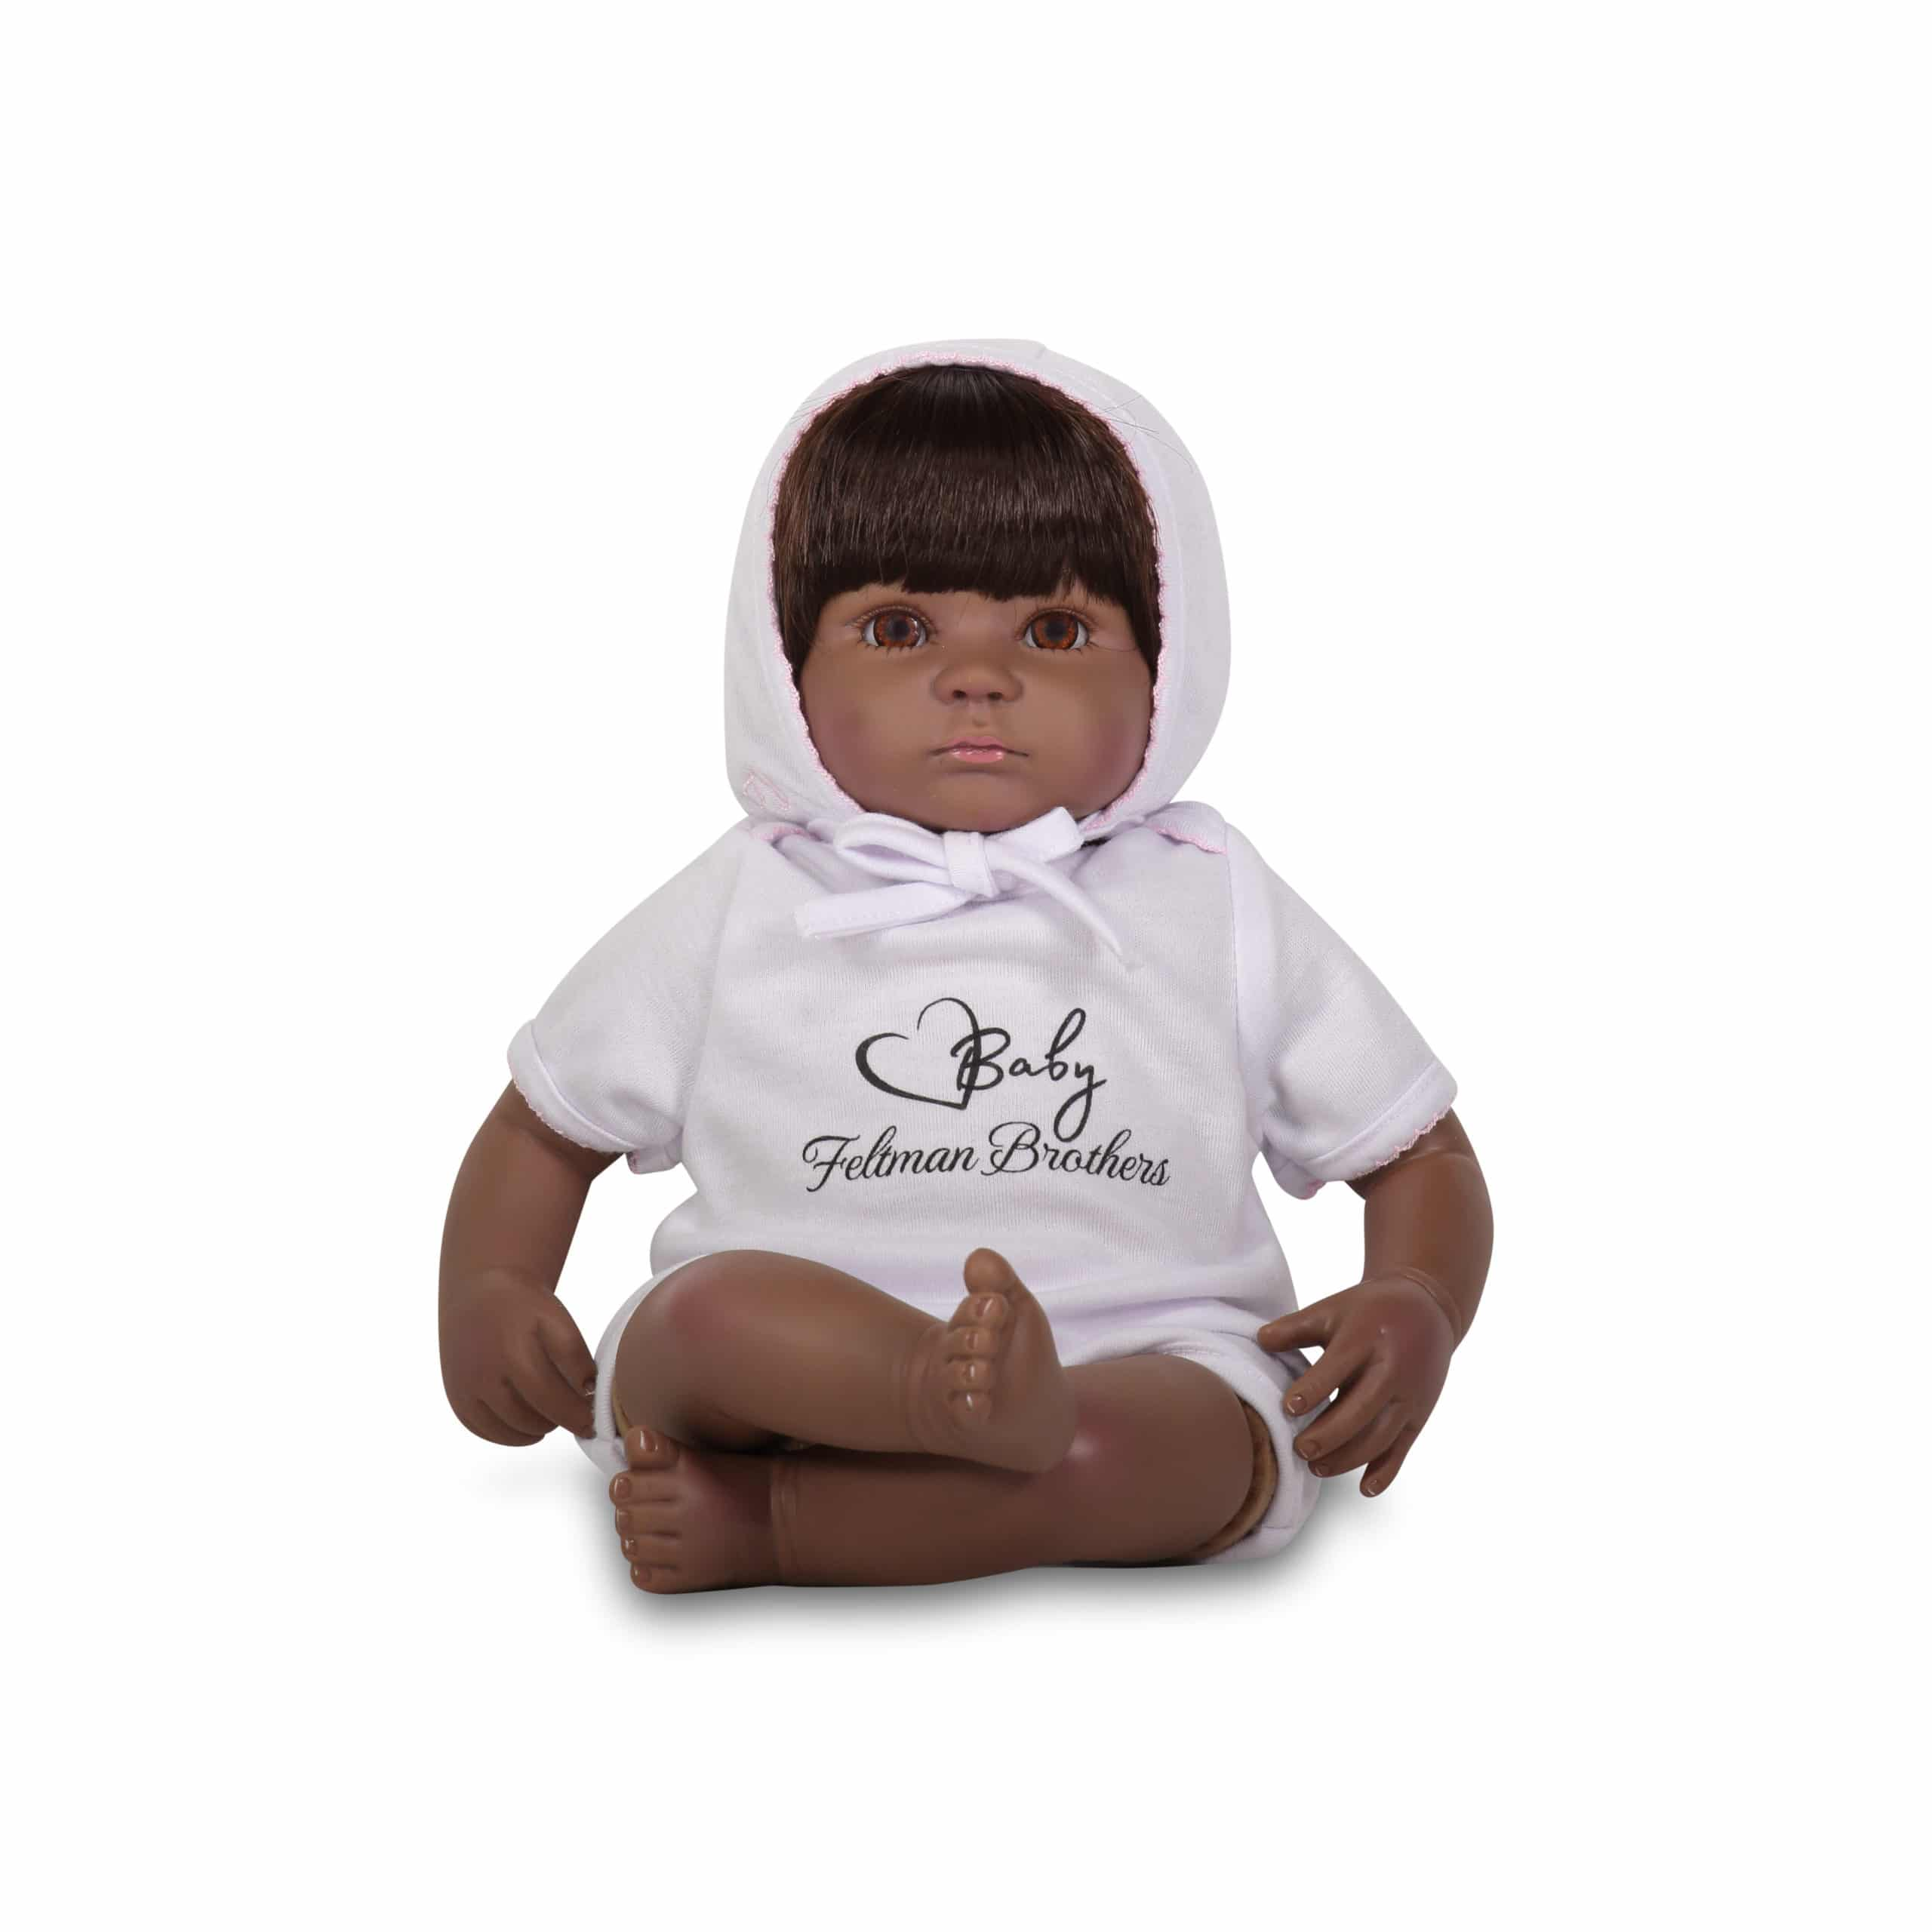 Looking for that perfect gift for someone you love that's thoughtful, unique and long lasting? Meet Destiny, one of the newest additions to the Feltman Brothers Doll Collection.